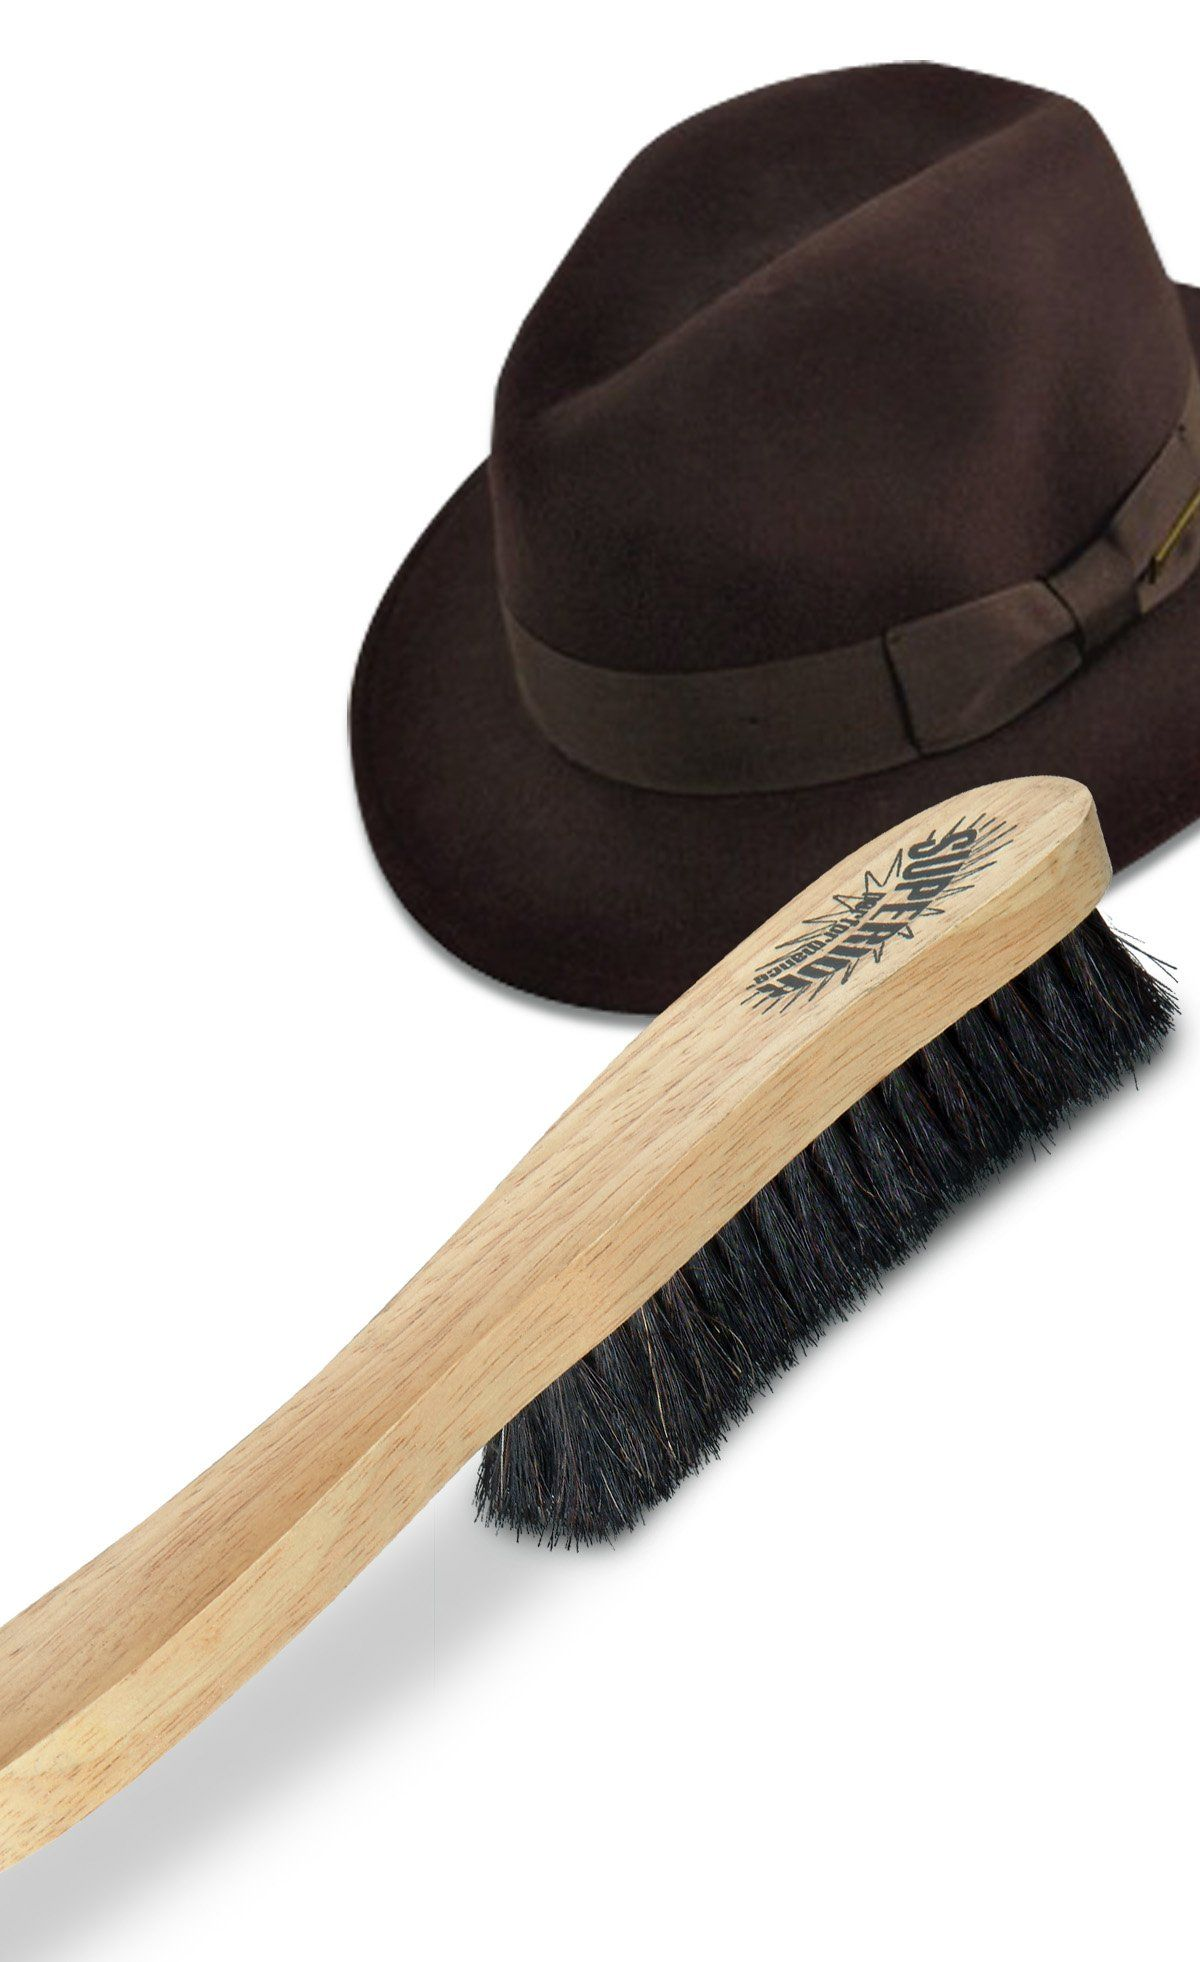 Amazon Com Superior Hat Brush Cleaning Brushes Horse Hair Brush Cleaner Lint Remover